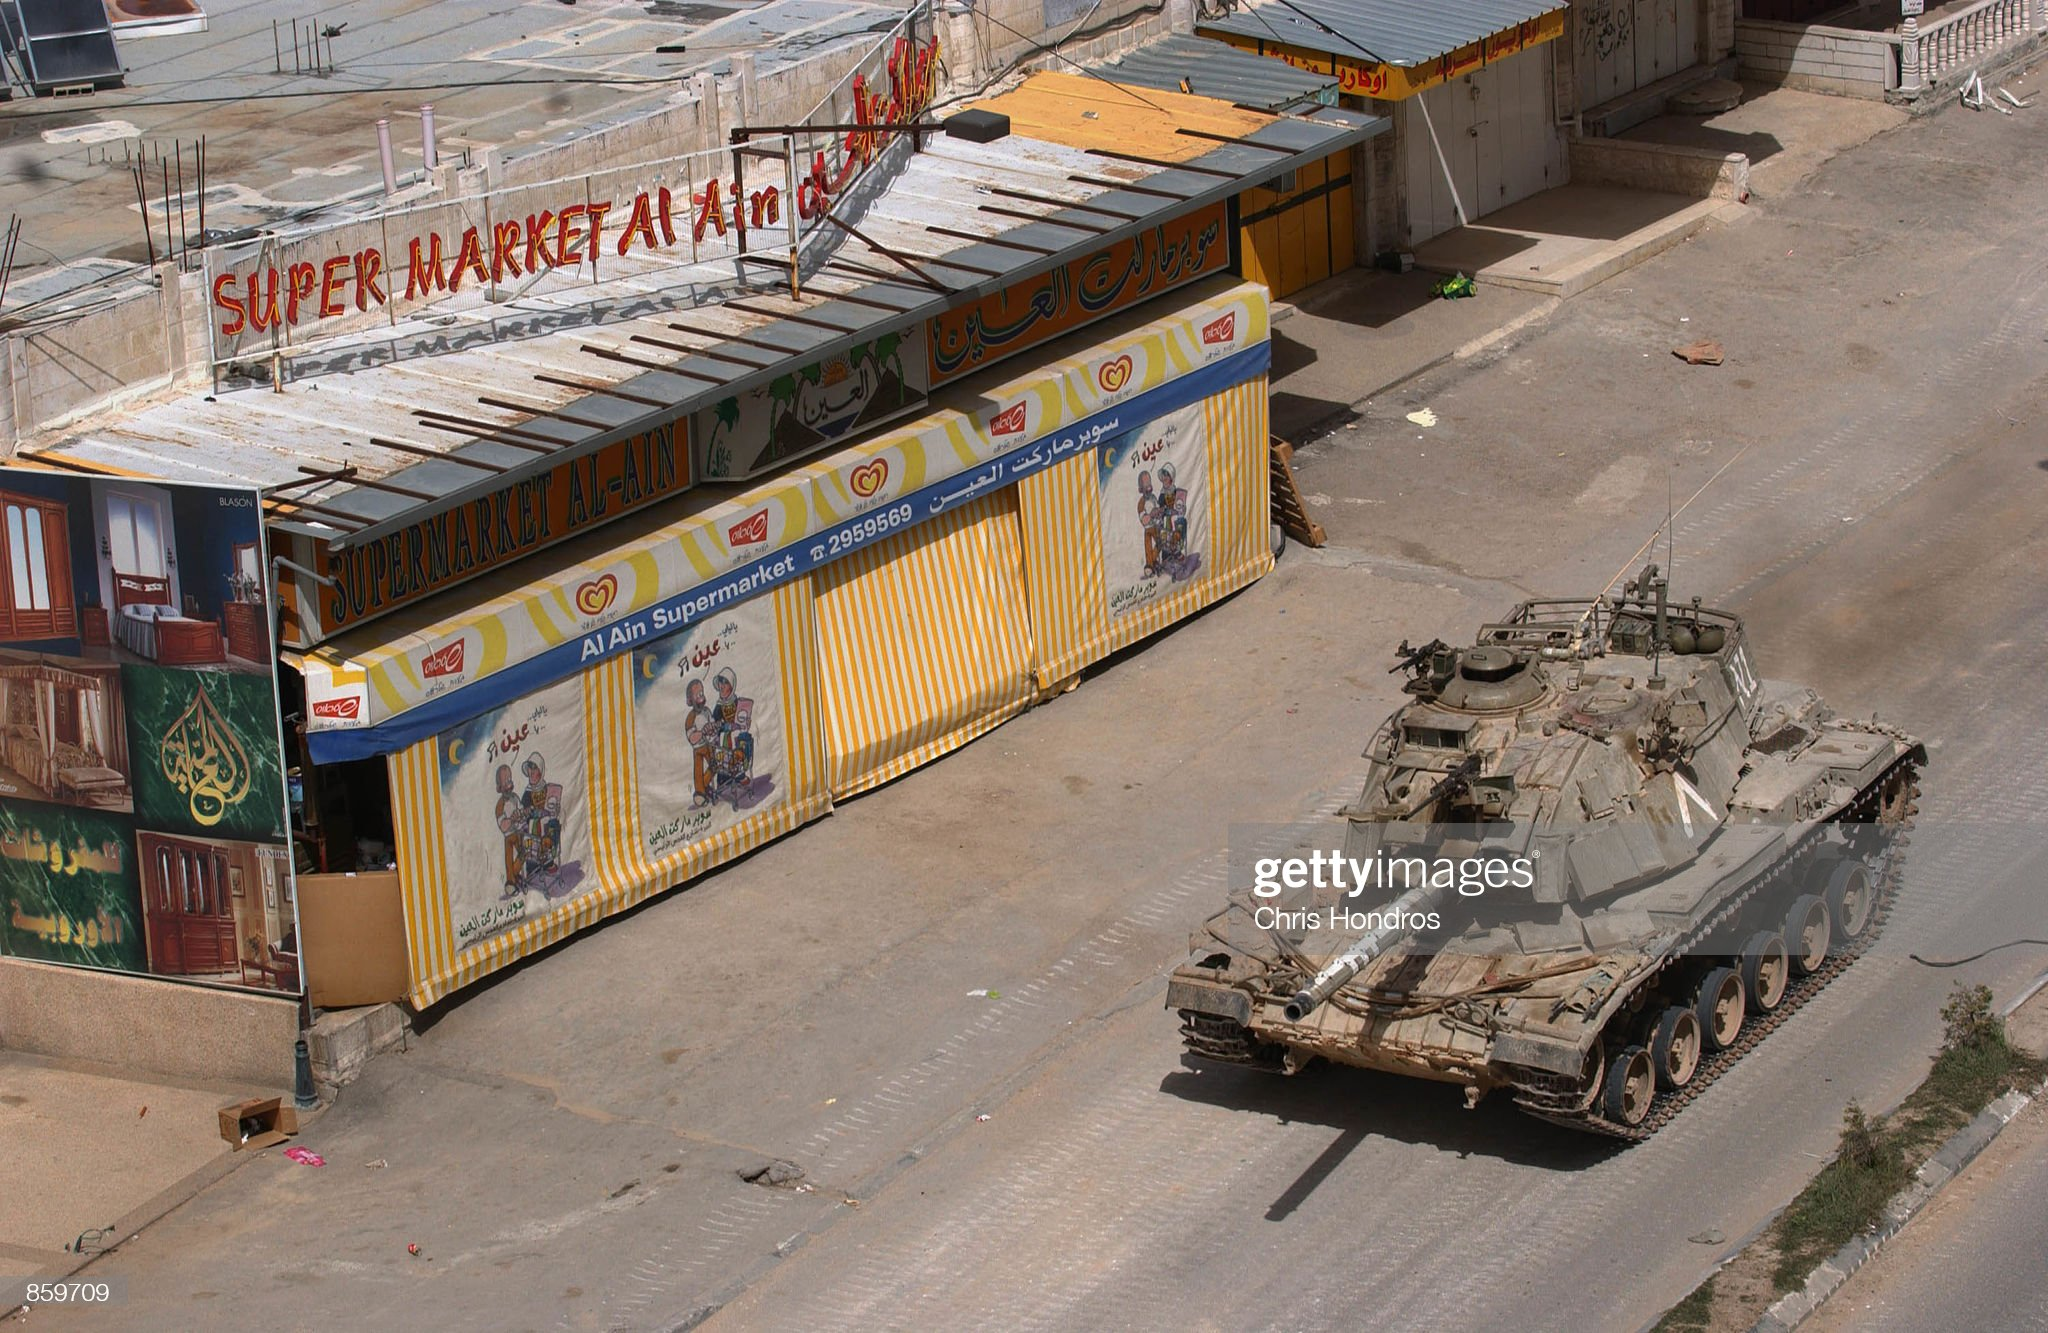 https://media.gettyimages.com/photos/an-israeli-tank-passes-by-a-closed-supermarket-april-11-2002-in-the-picture-id859709?s=2048x2048